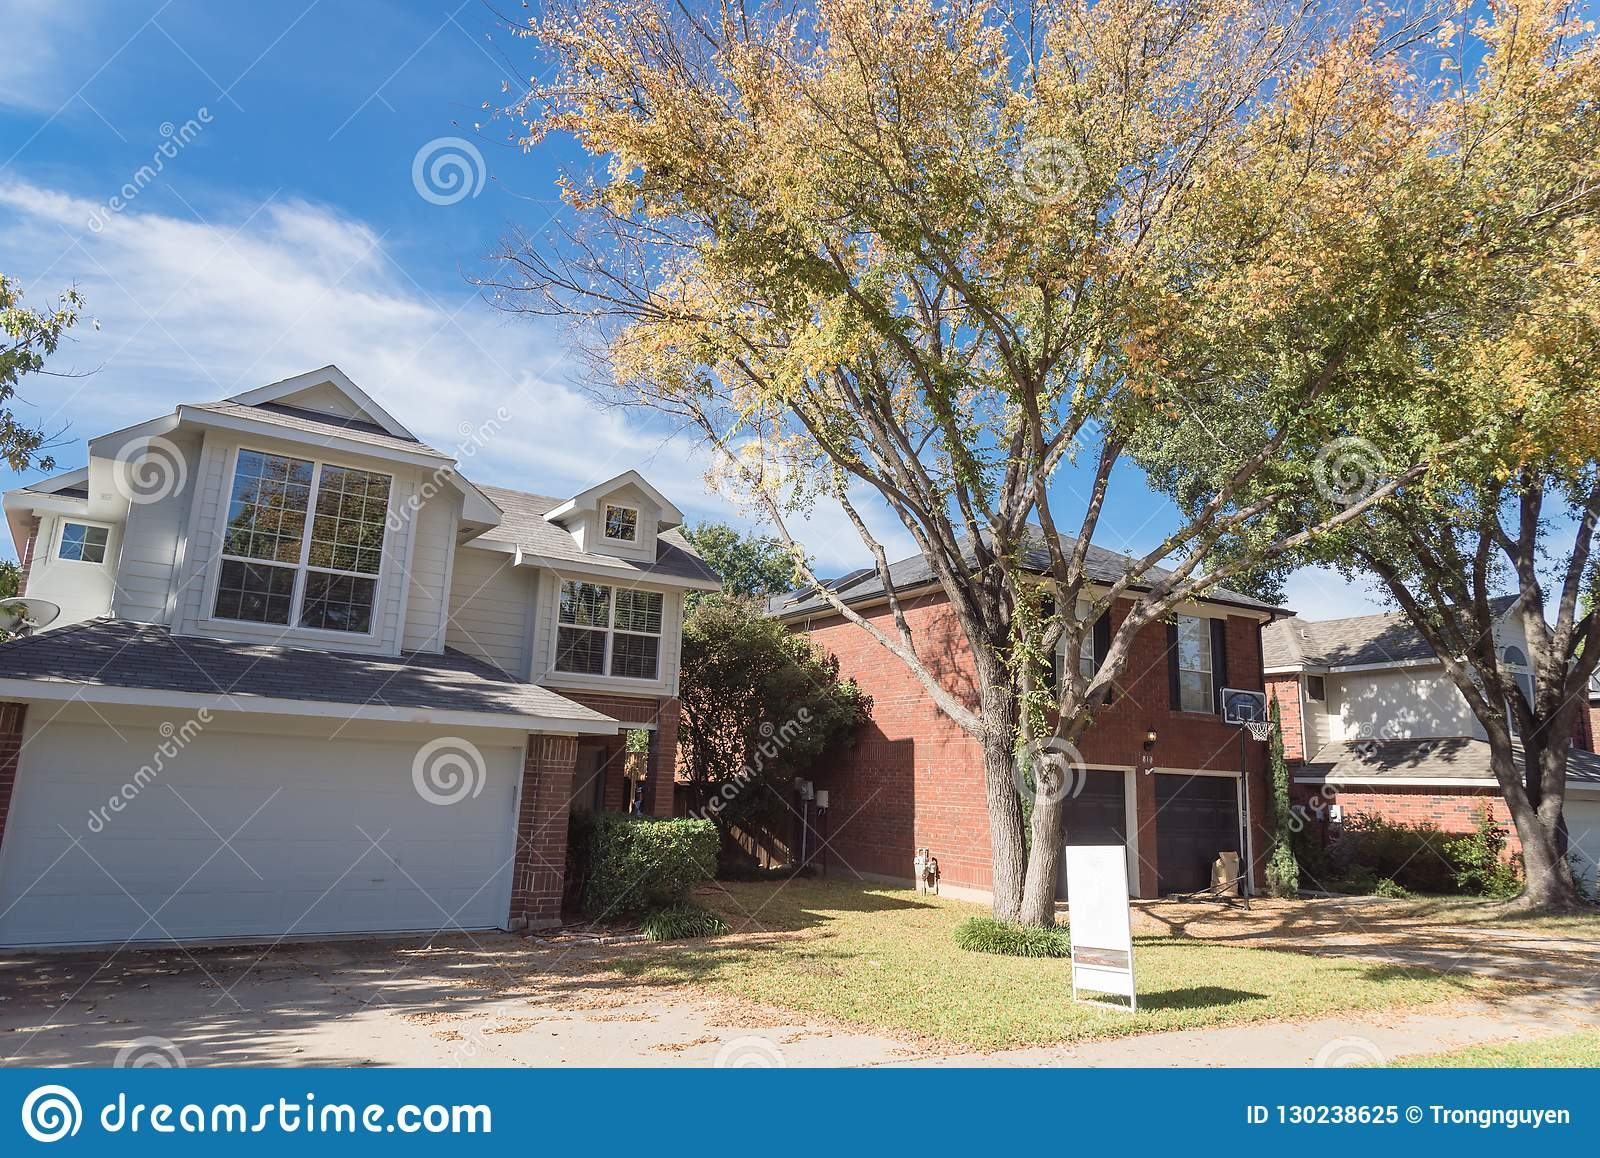 Home With House For Sale Yard Sign And Colorful Fall Foliage In